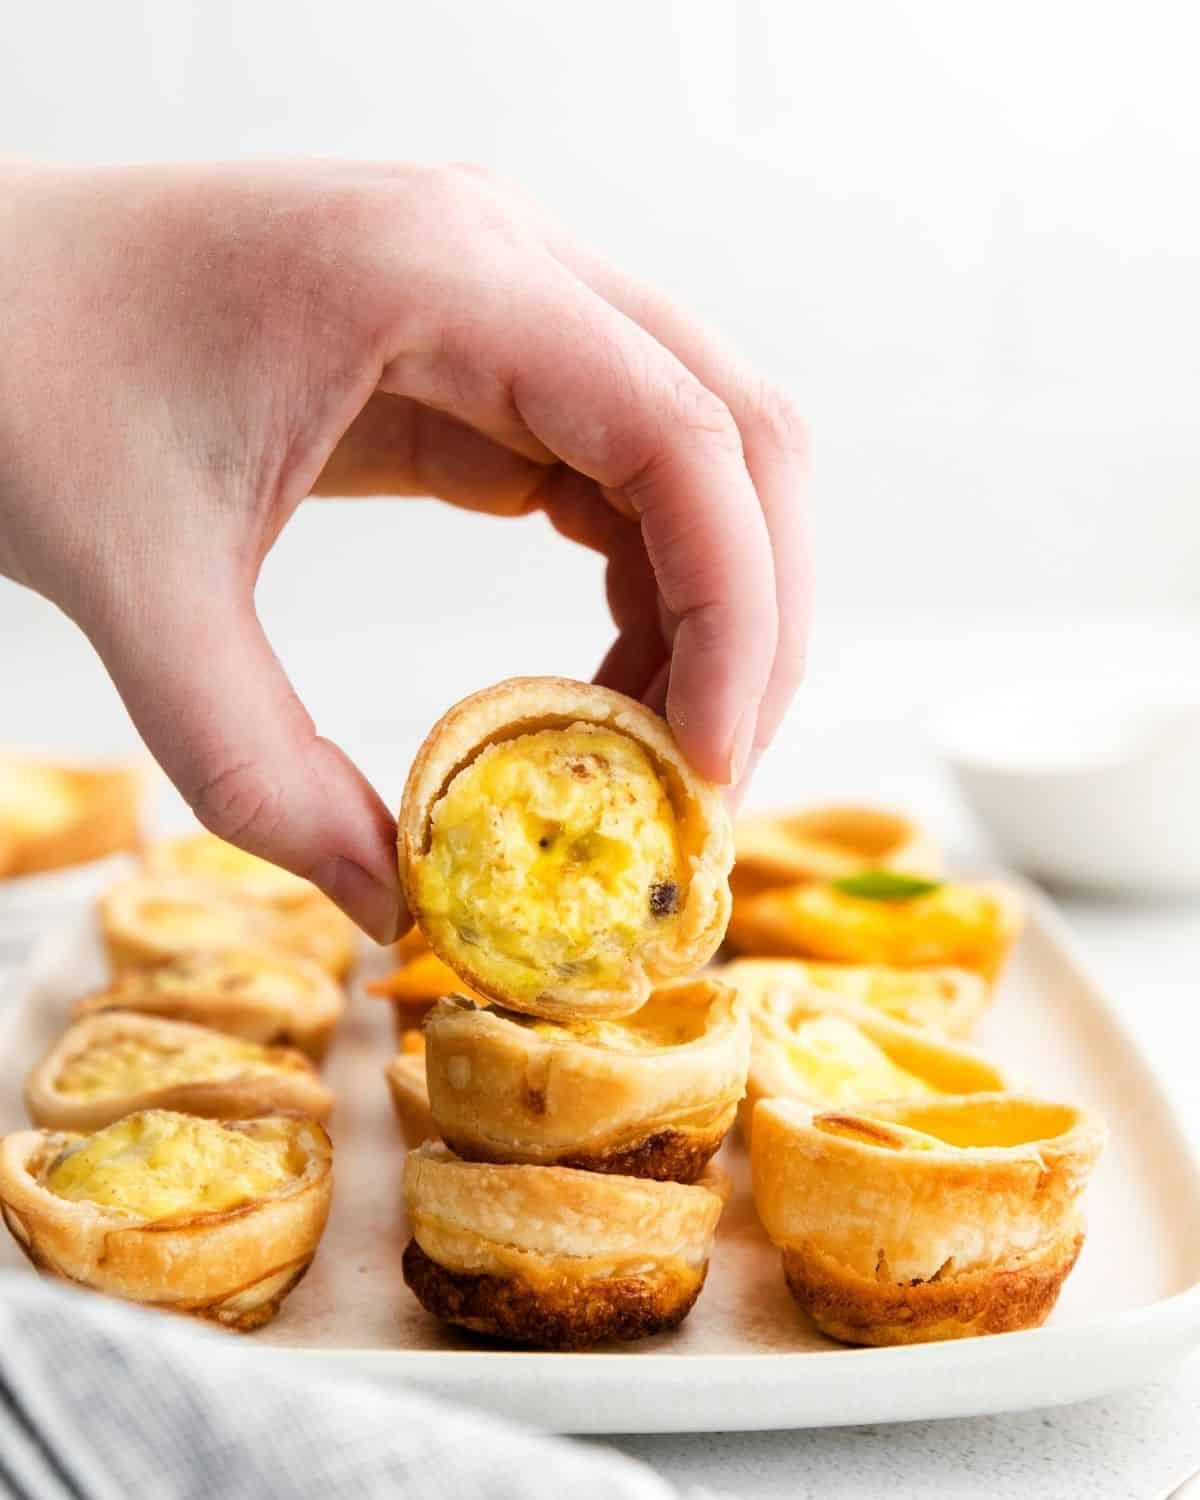 Mini quiche on a plate with one being held above the others.